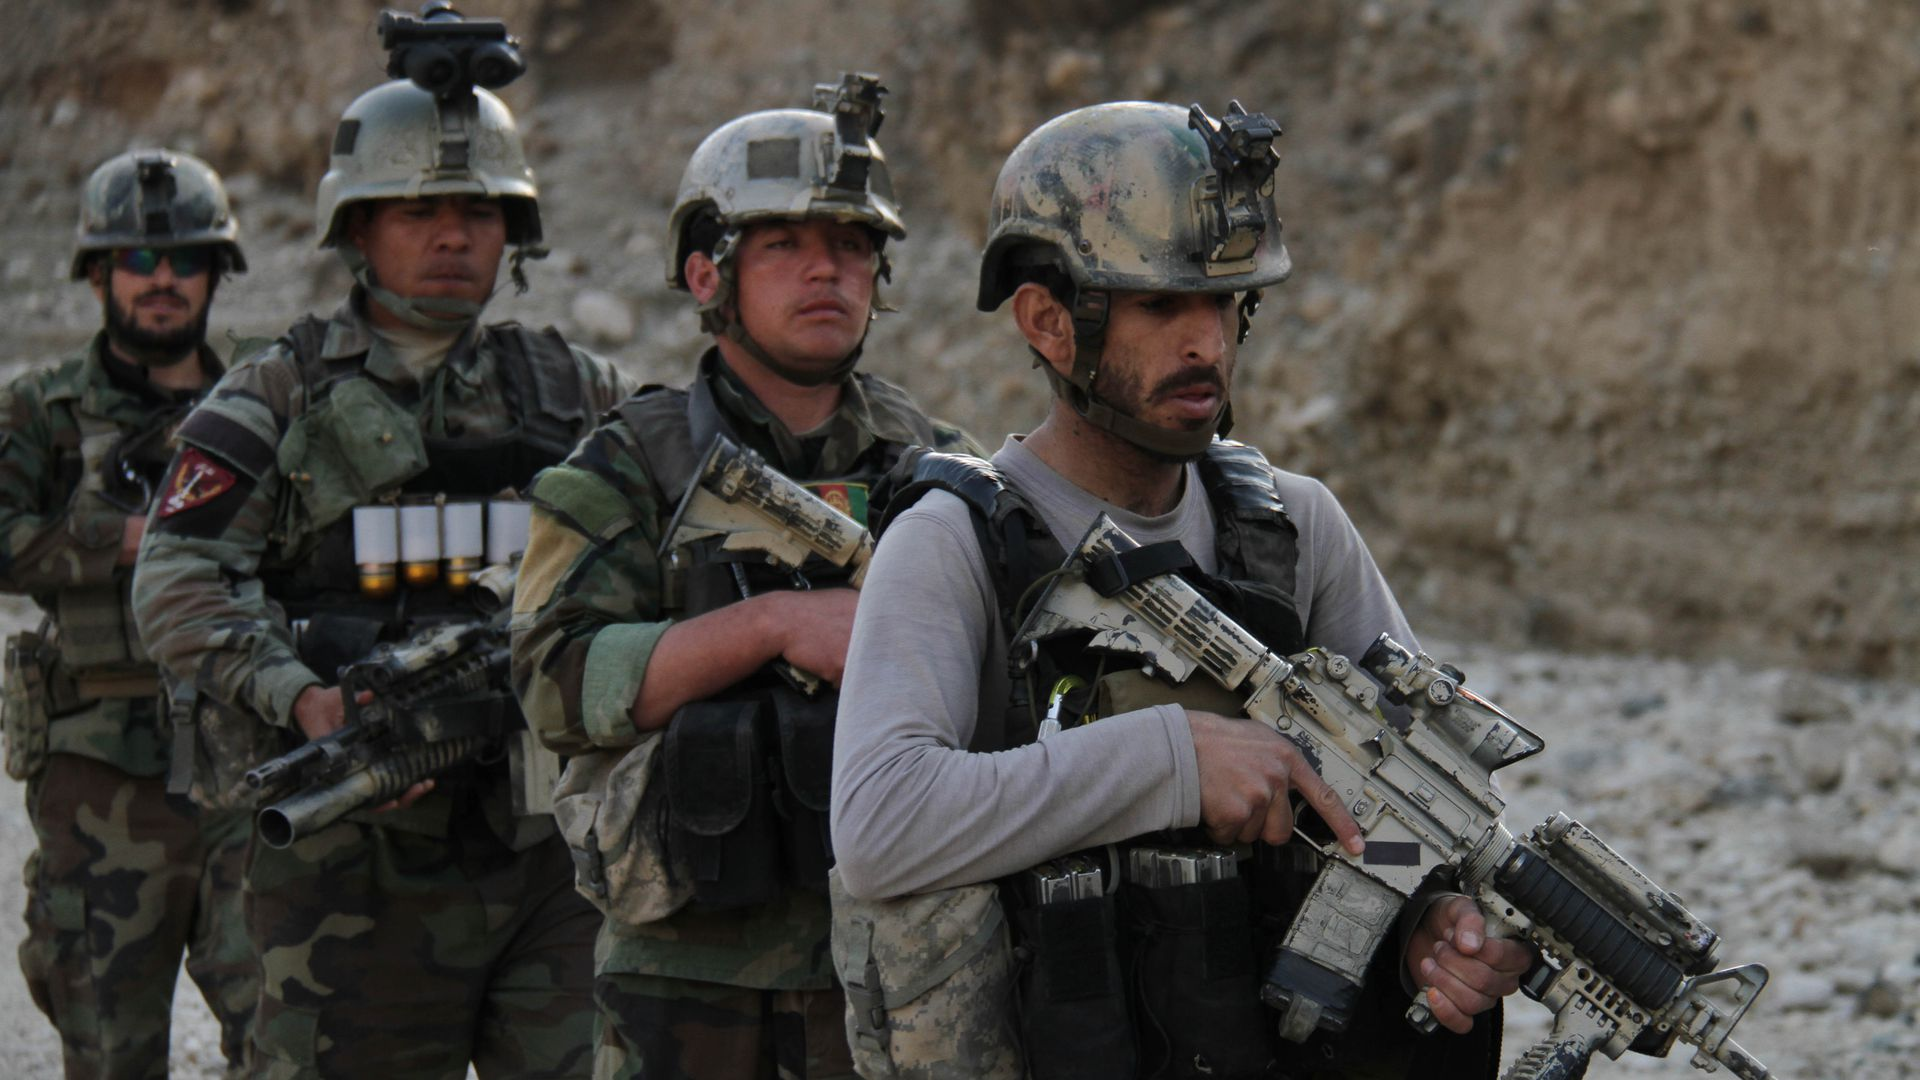 Afghan commandos forces take part in an operations against the Taliban, IS and other insurgent groups.